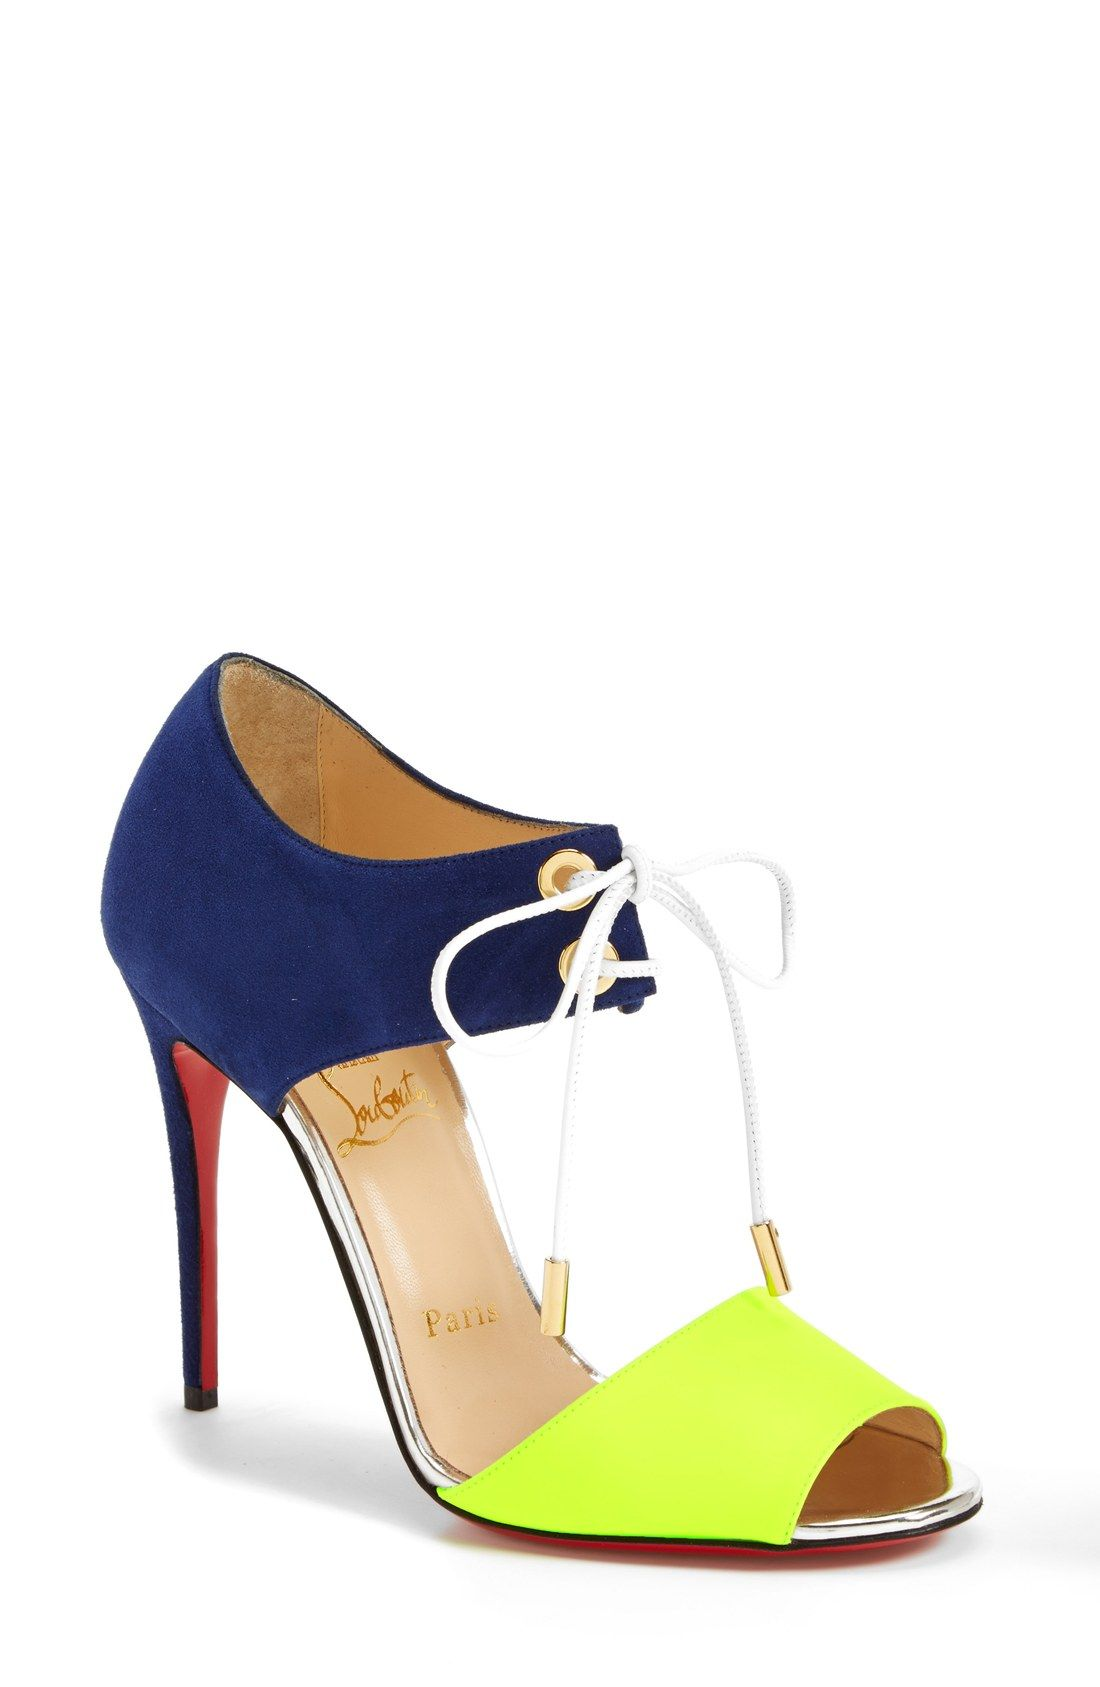 e8acaf7d56 Adding these neon Christian Louboutin tie-up sandals to the wish list. All  About